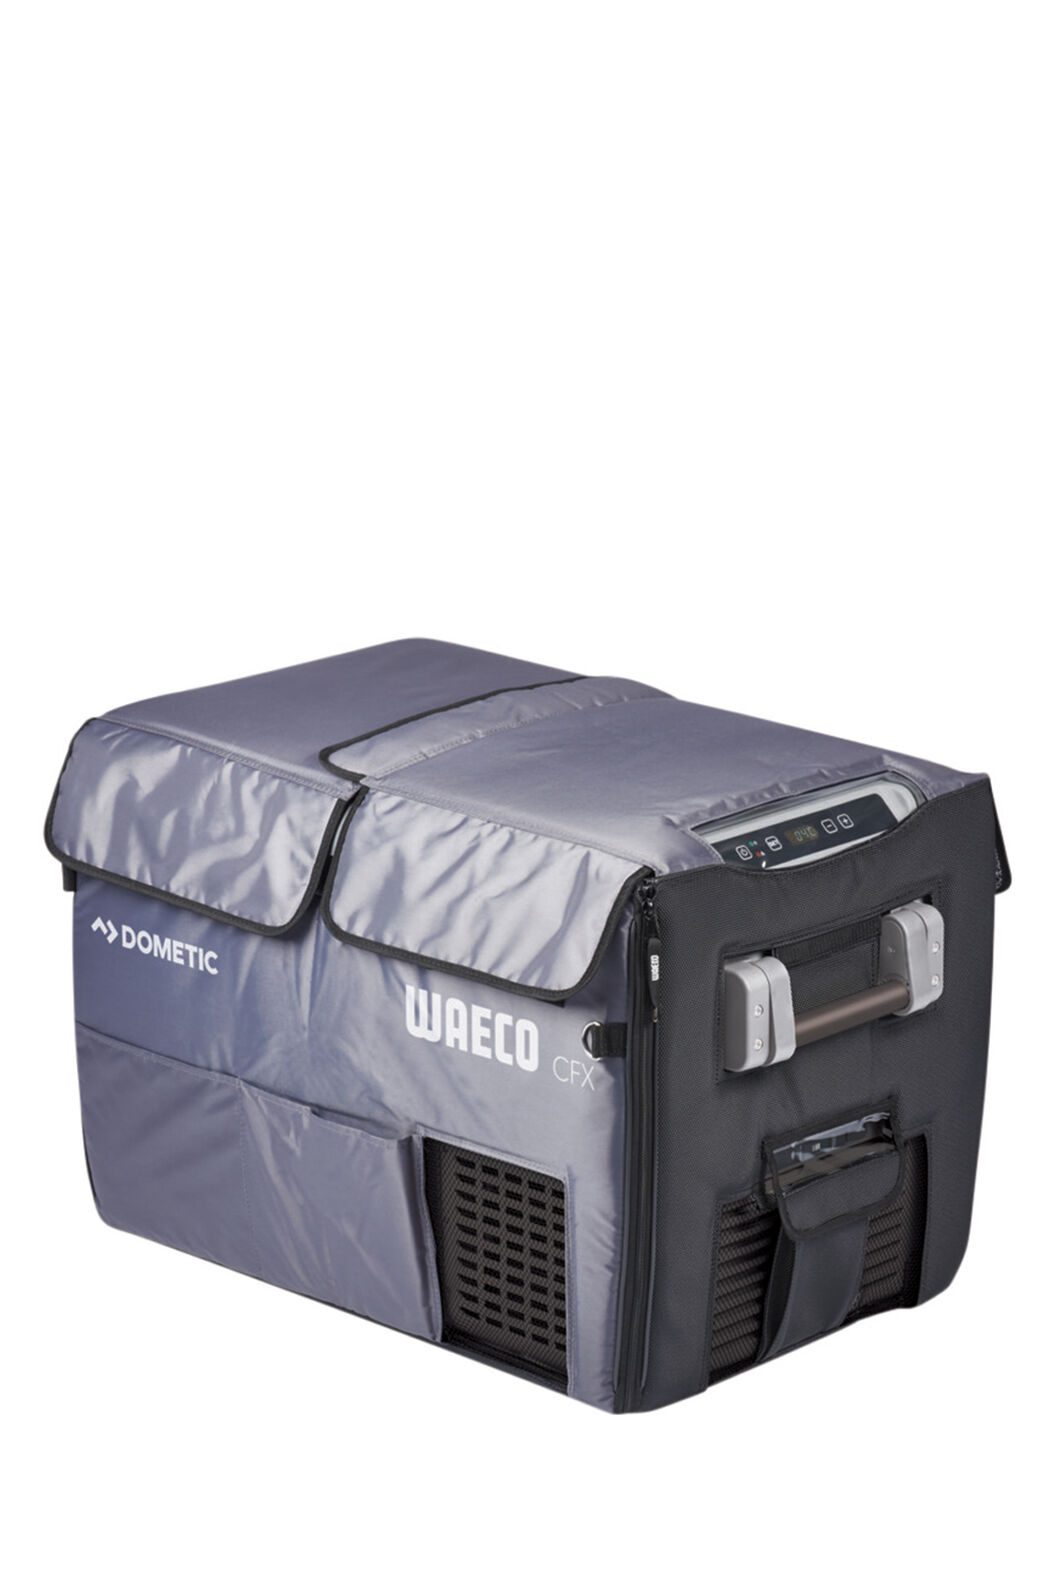 Waeco CFX 50 Protective Cover, None, hi-res